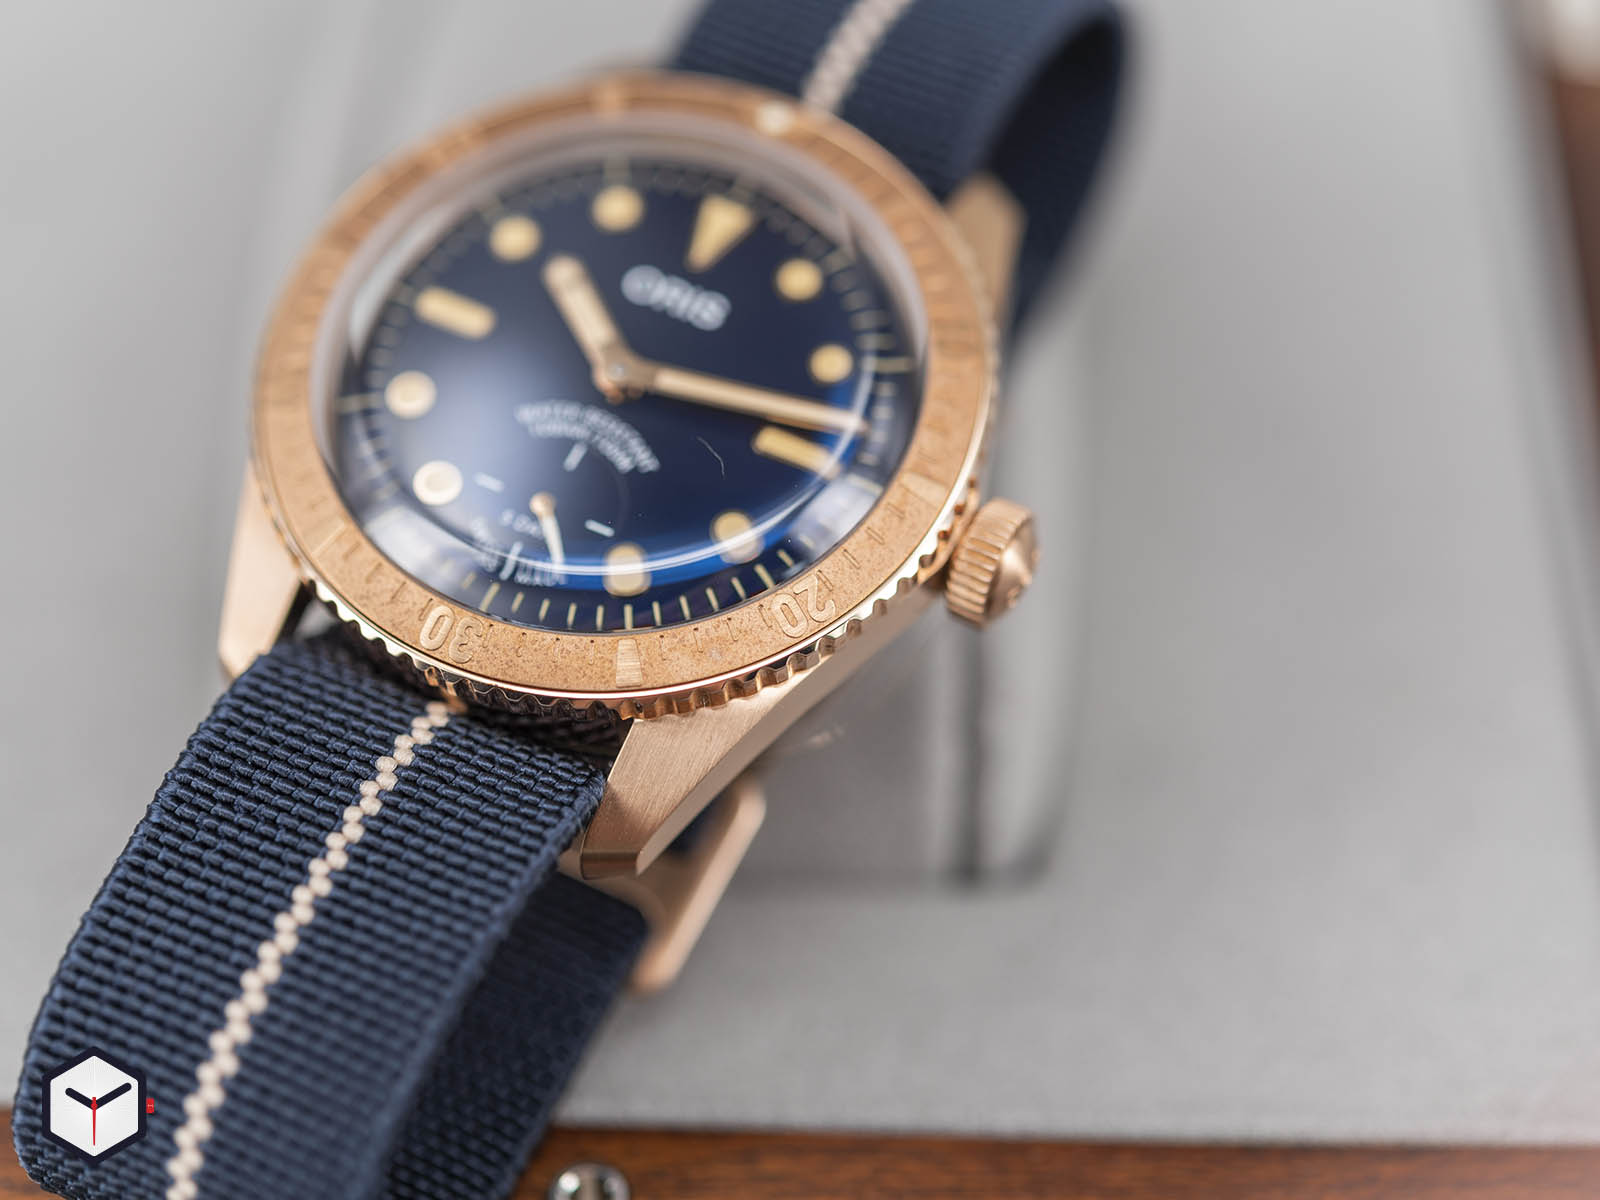 01-401-7764-3185-oris-carl-brashear-calibre-401-limited-edition-4.jpg